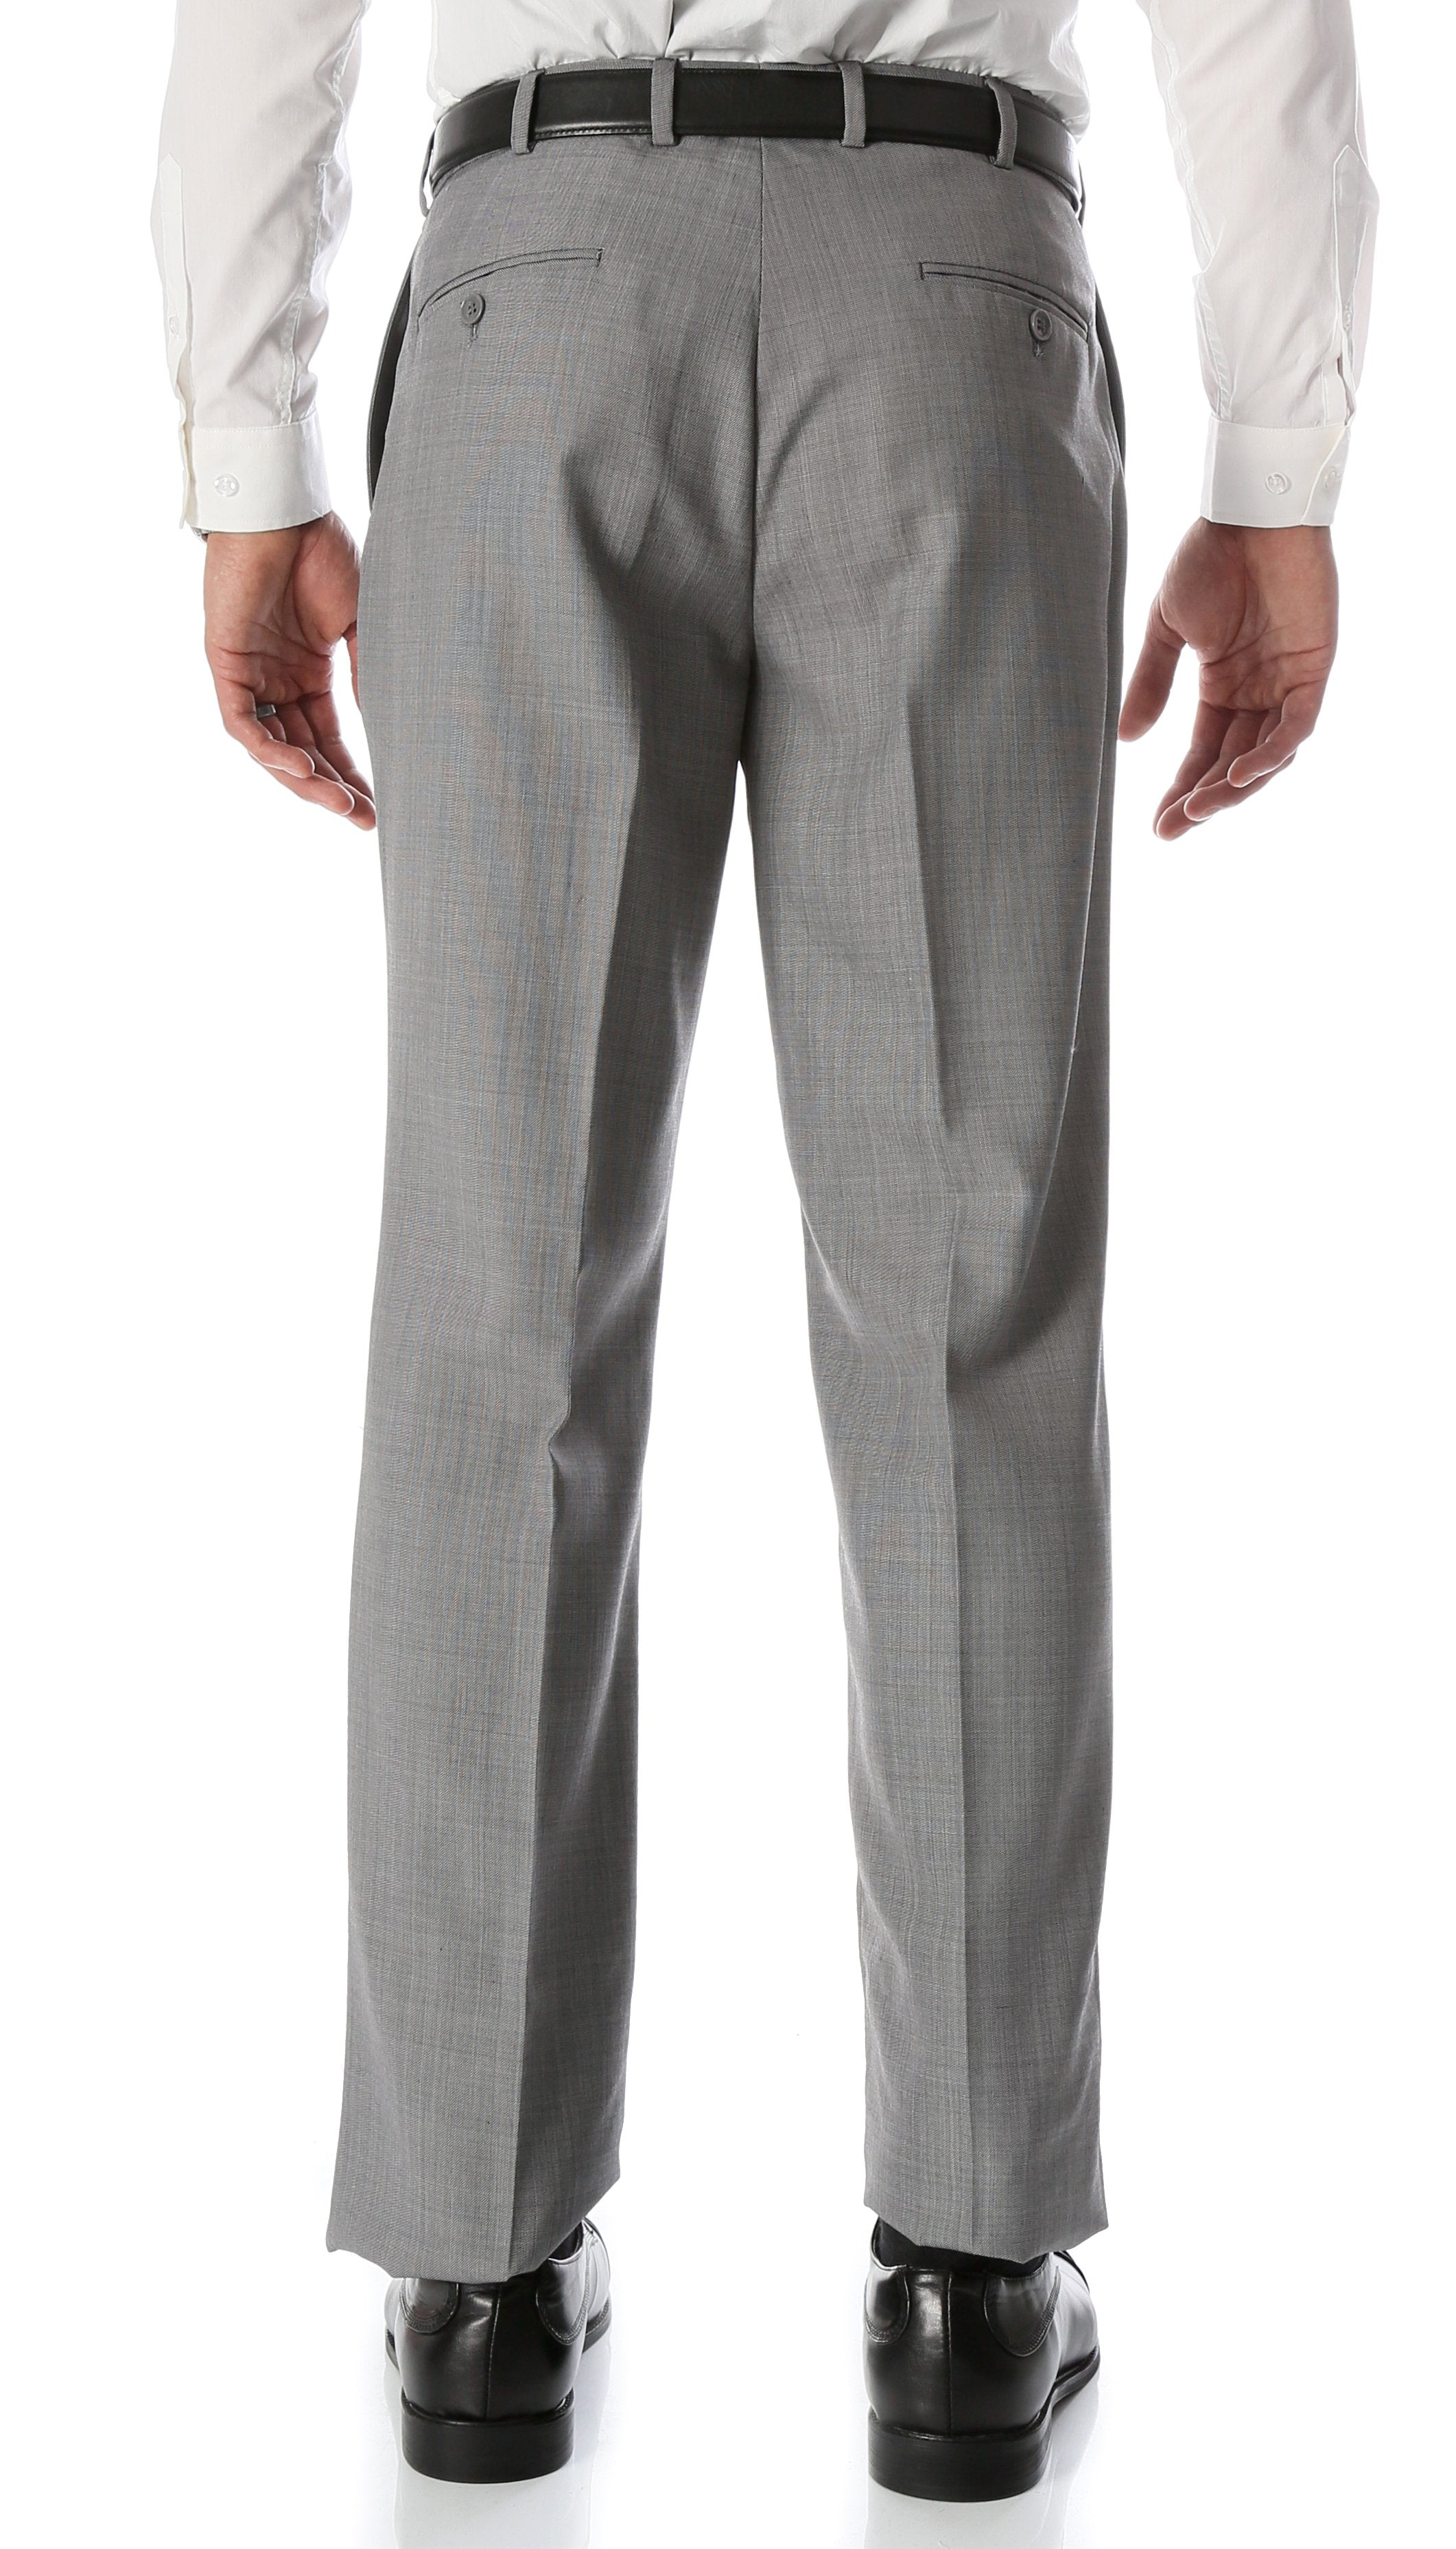 Ben Light Grey Wool Blend Modern Fit Traveler Dress Pants - Giorgio's Menswear